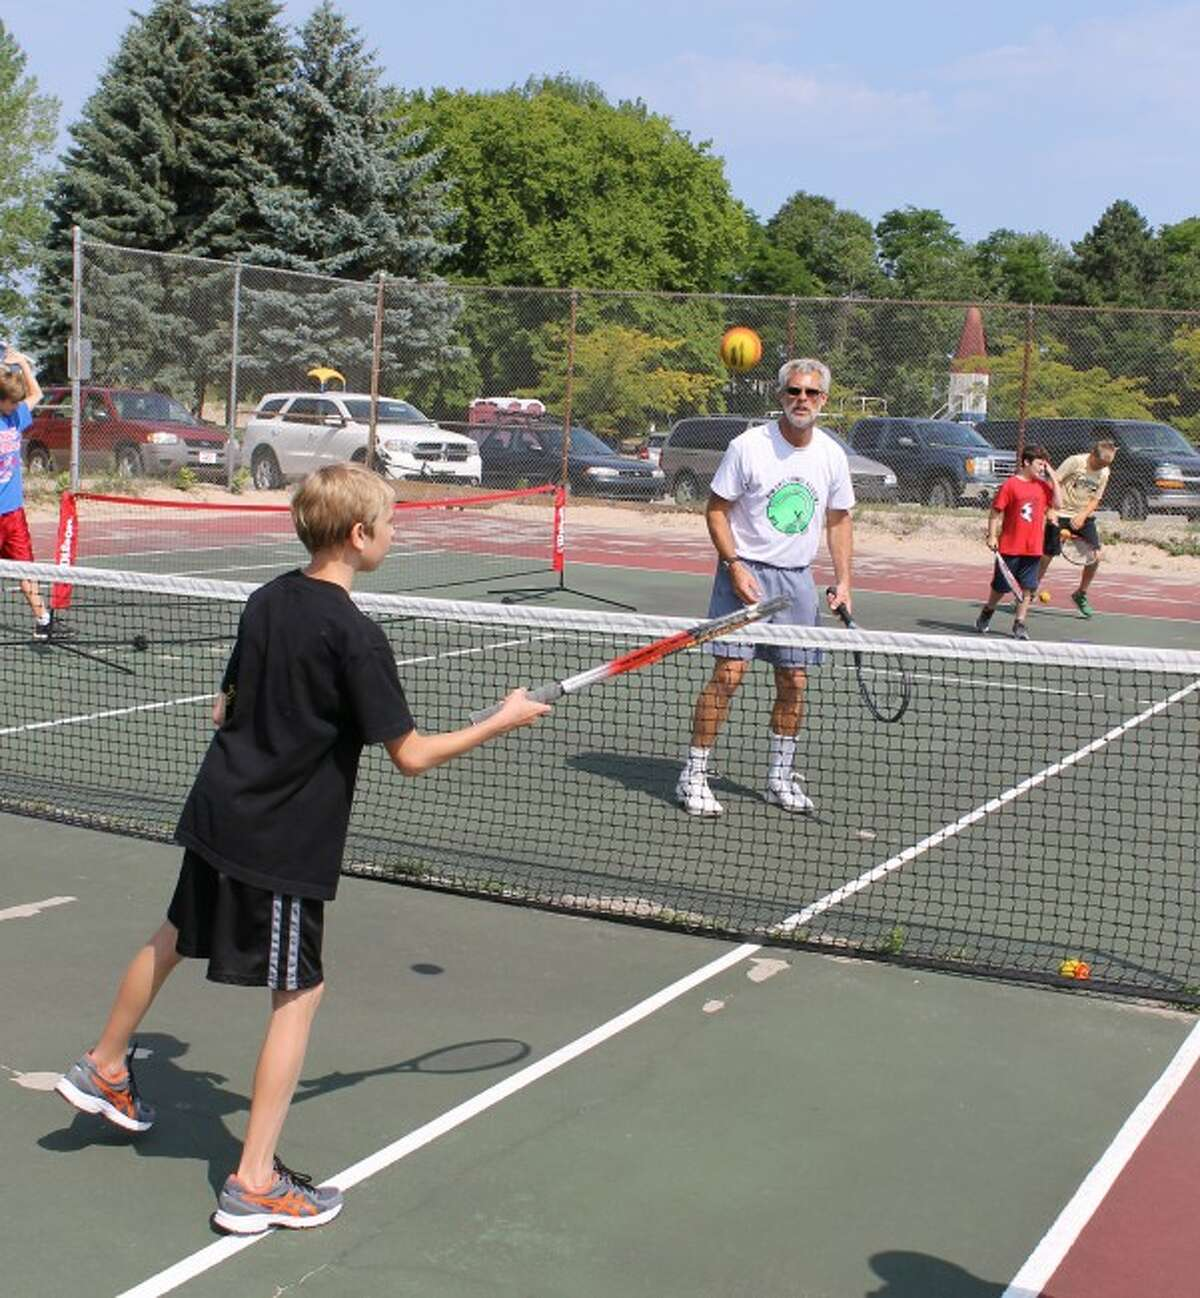 Instructor Greg Sheffield and Ian Kamaloski practice volleying and making shots at the net.